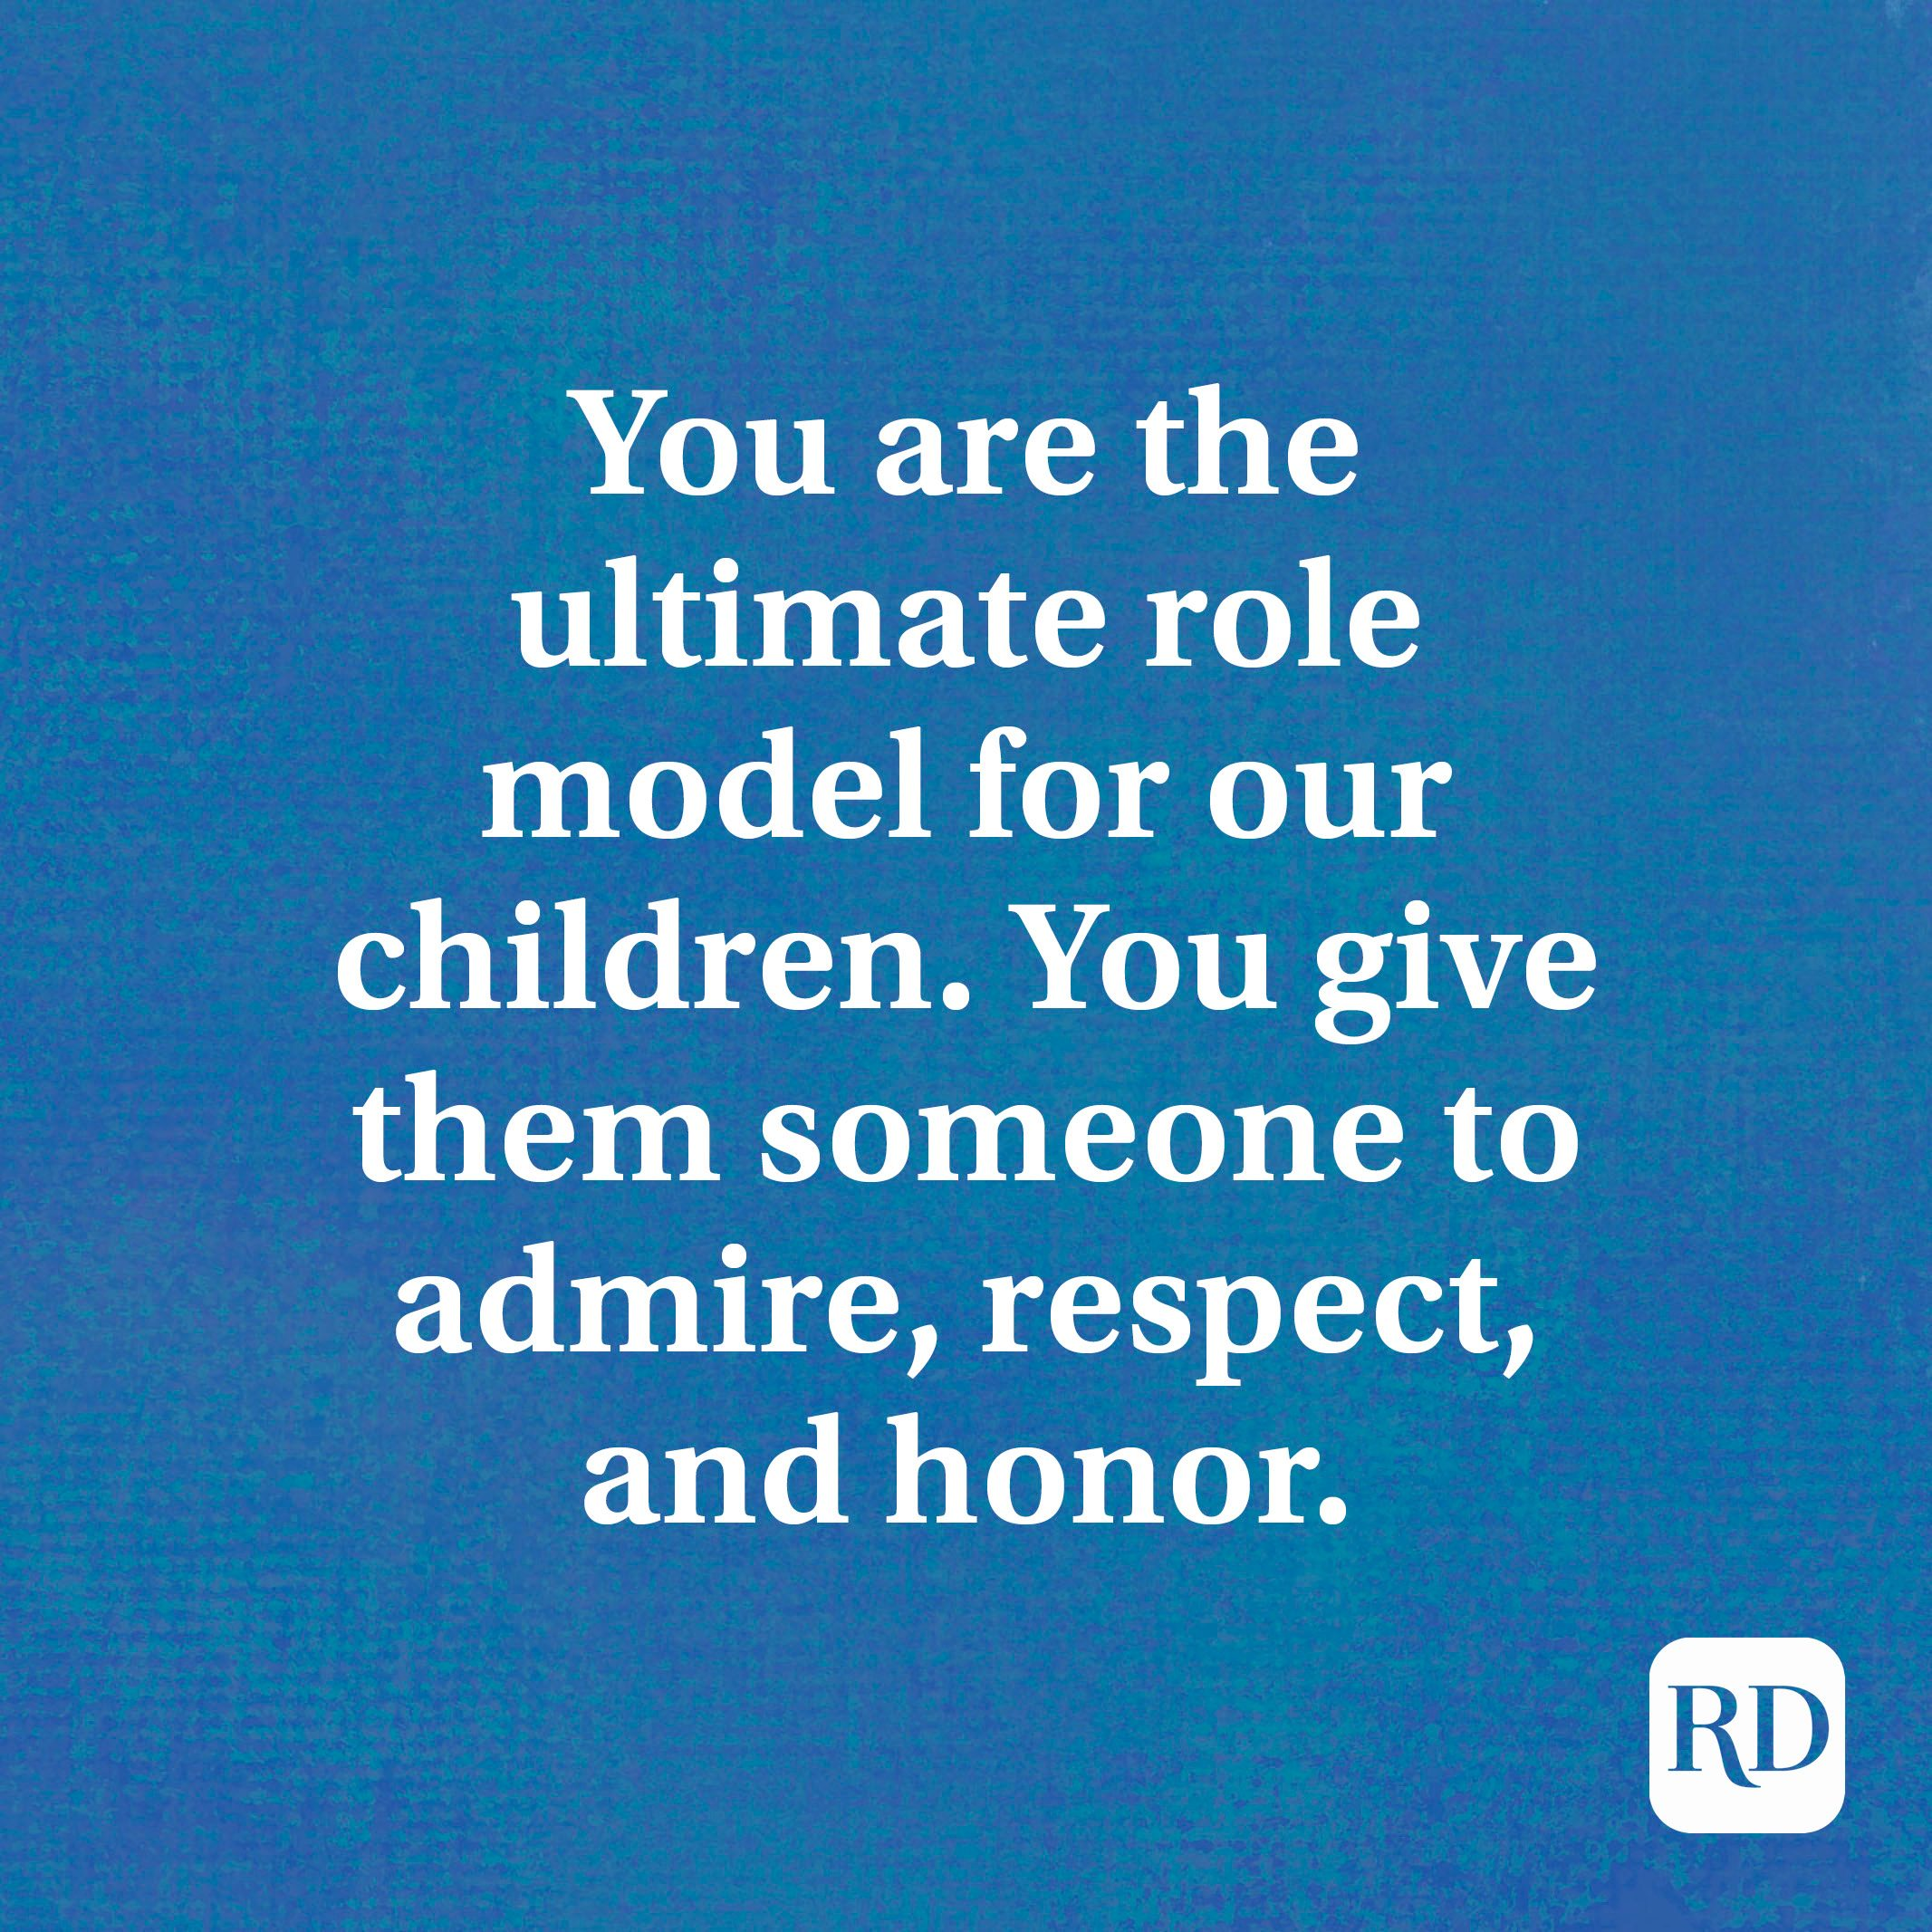 You are the ultimate role model for our children. You give them someone to admire, respect, and honor.